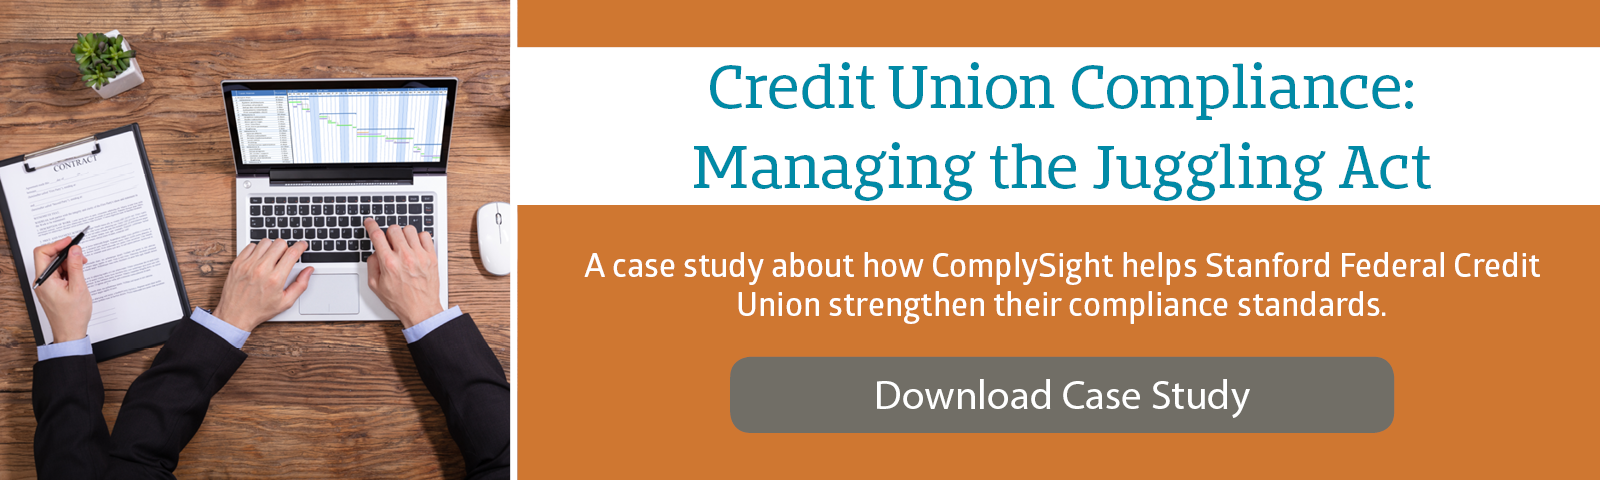 Case Study - Credit Union Compliance: Managing the Juggling Act